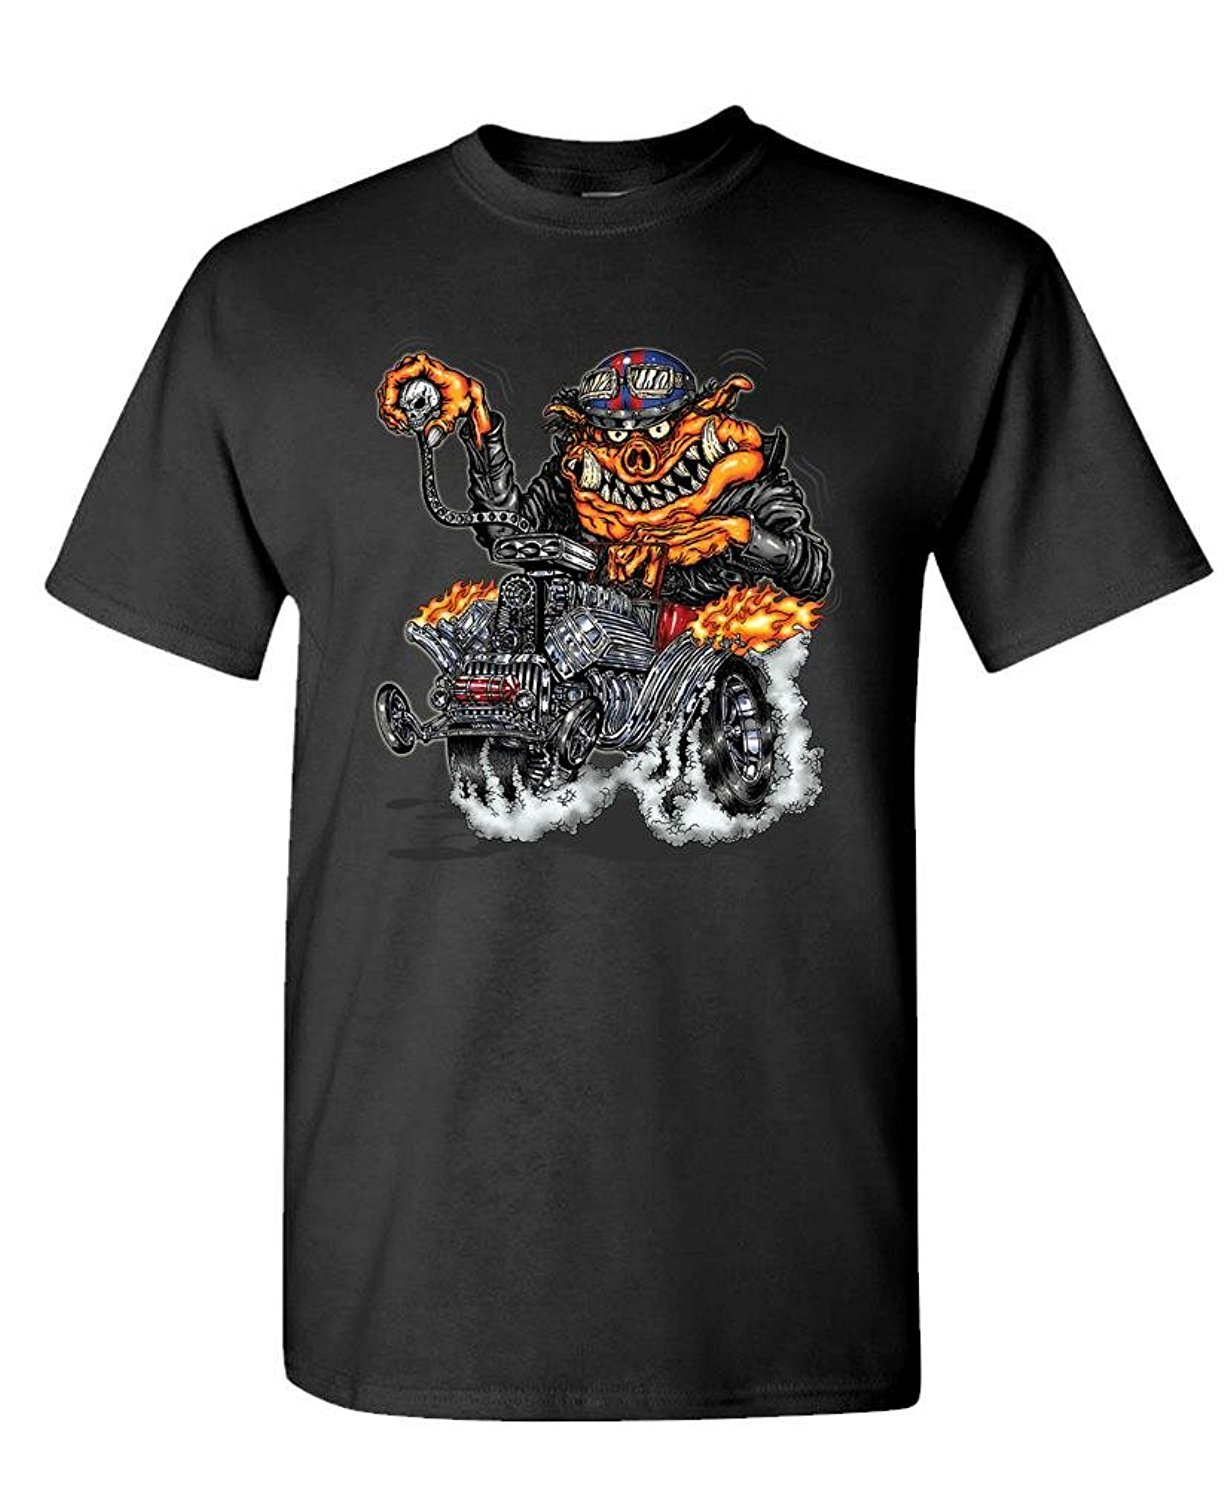 Compare prices on road rat online shopping buy low price for Custom t shirts fast